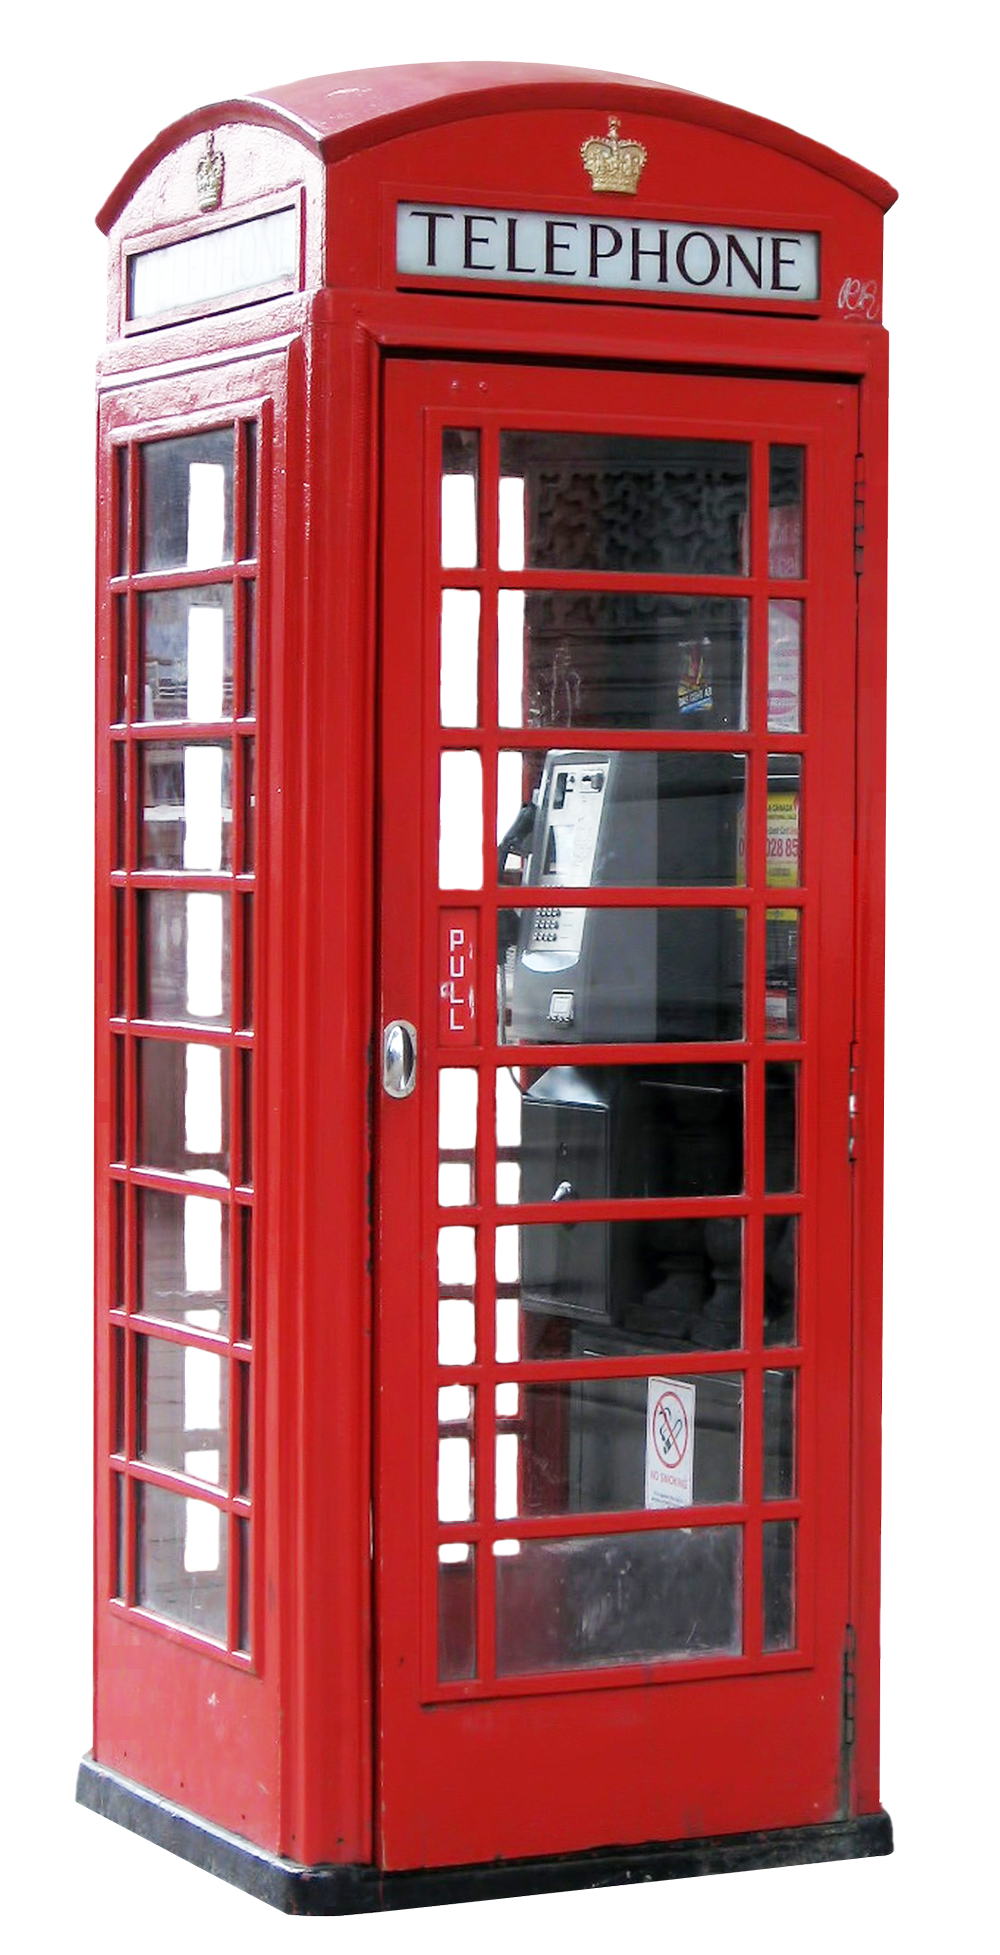 Telephone Booth PNG Image